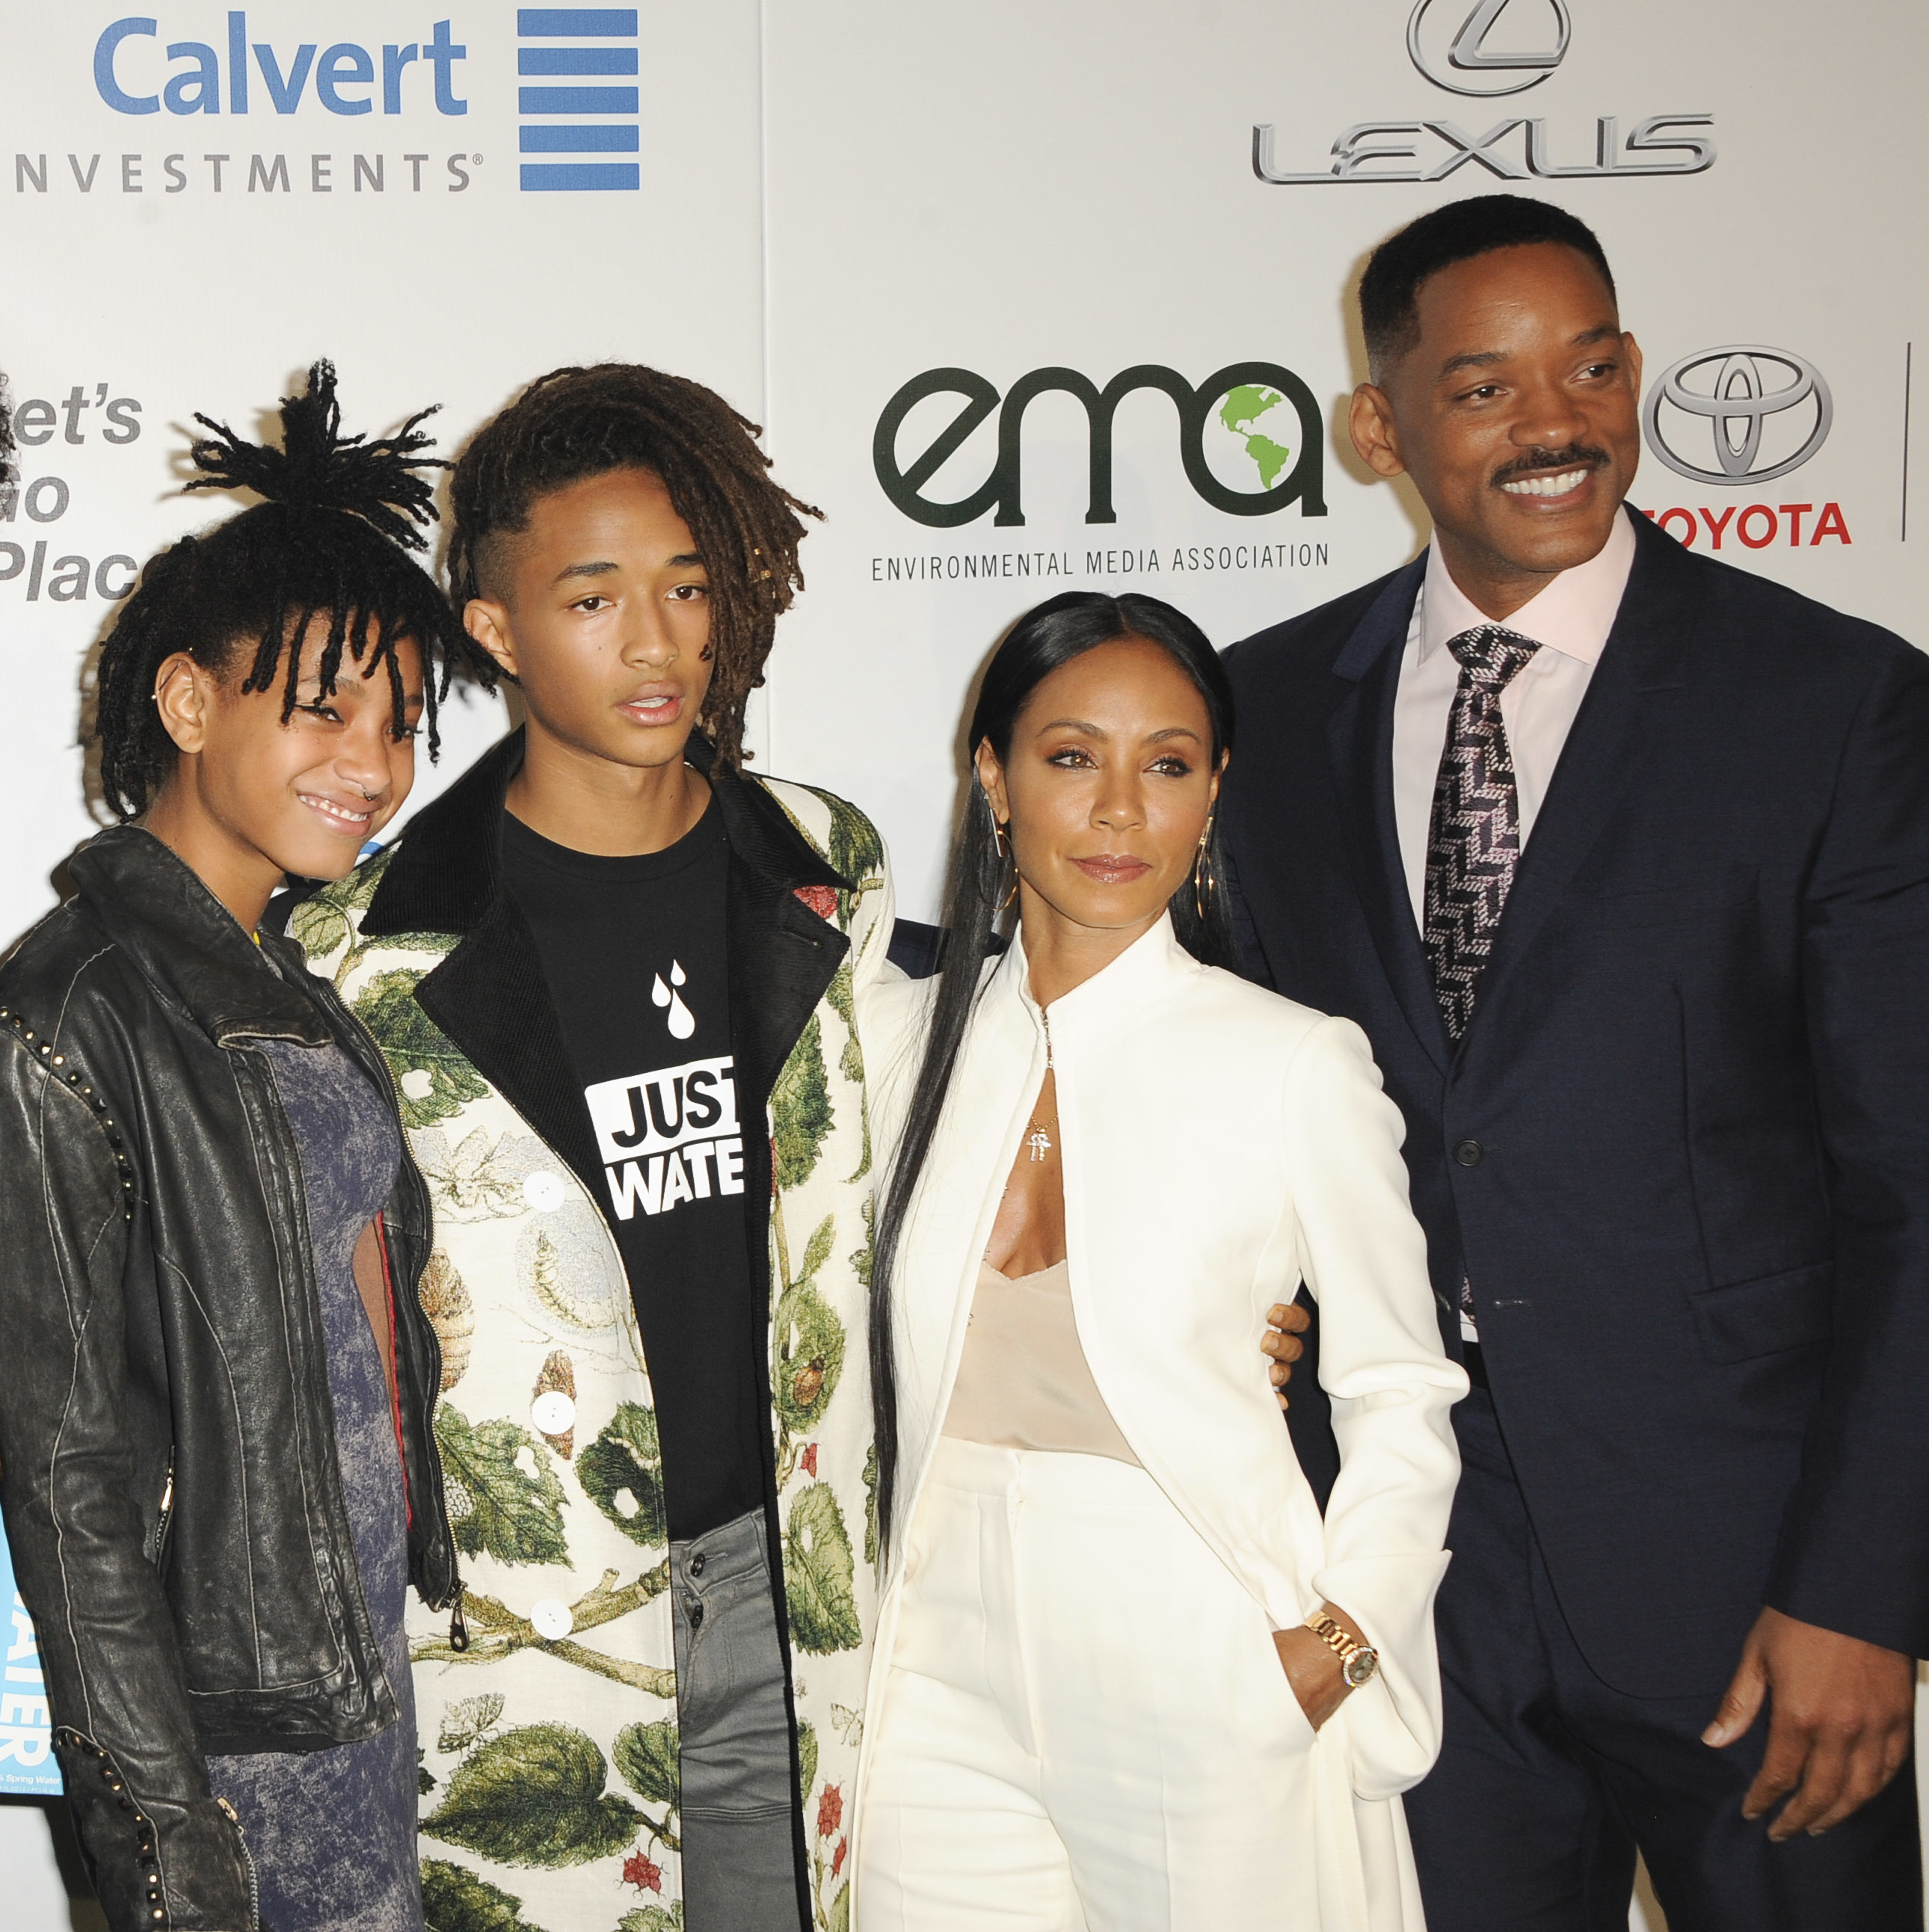 Will Smith, Jada Pinkett Smith, Willow Smith, Jaden Smith attend the 26th Annual Environmental Media Awards  in Los Angeles on Oct. 22, 2016.